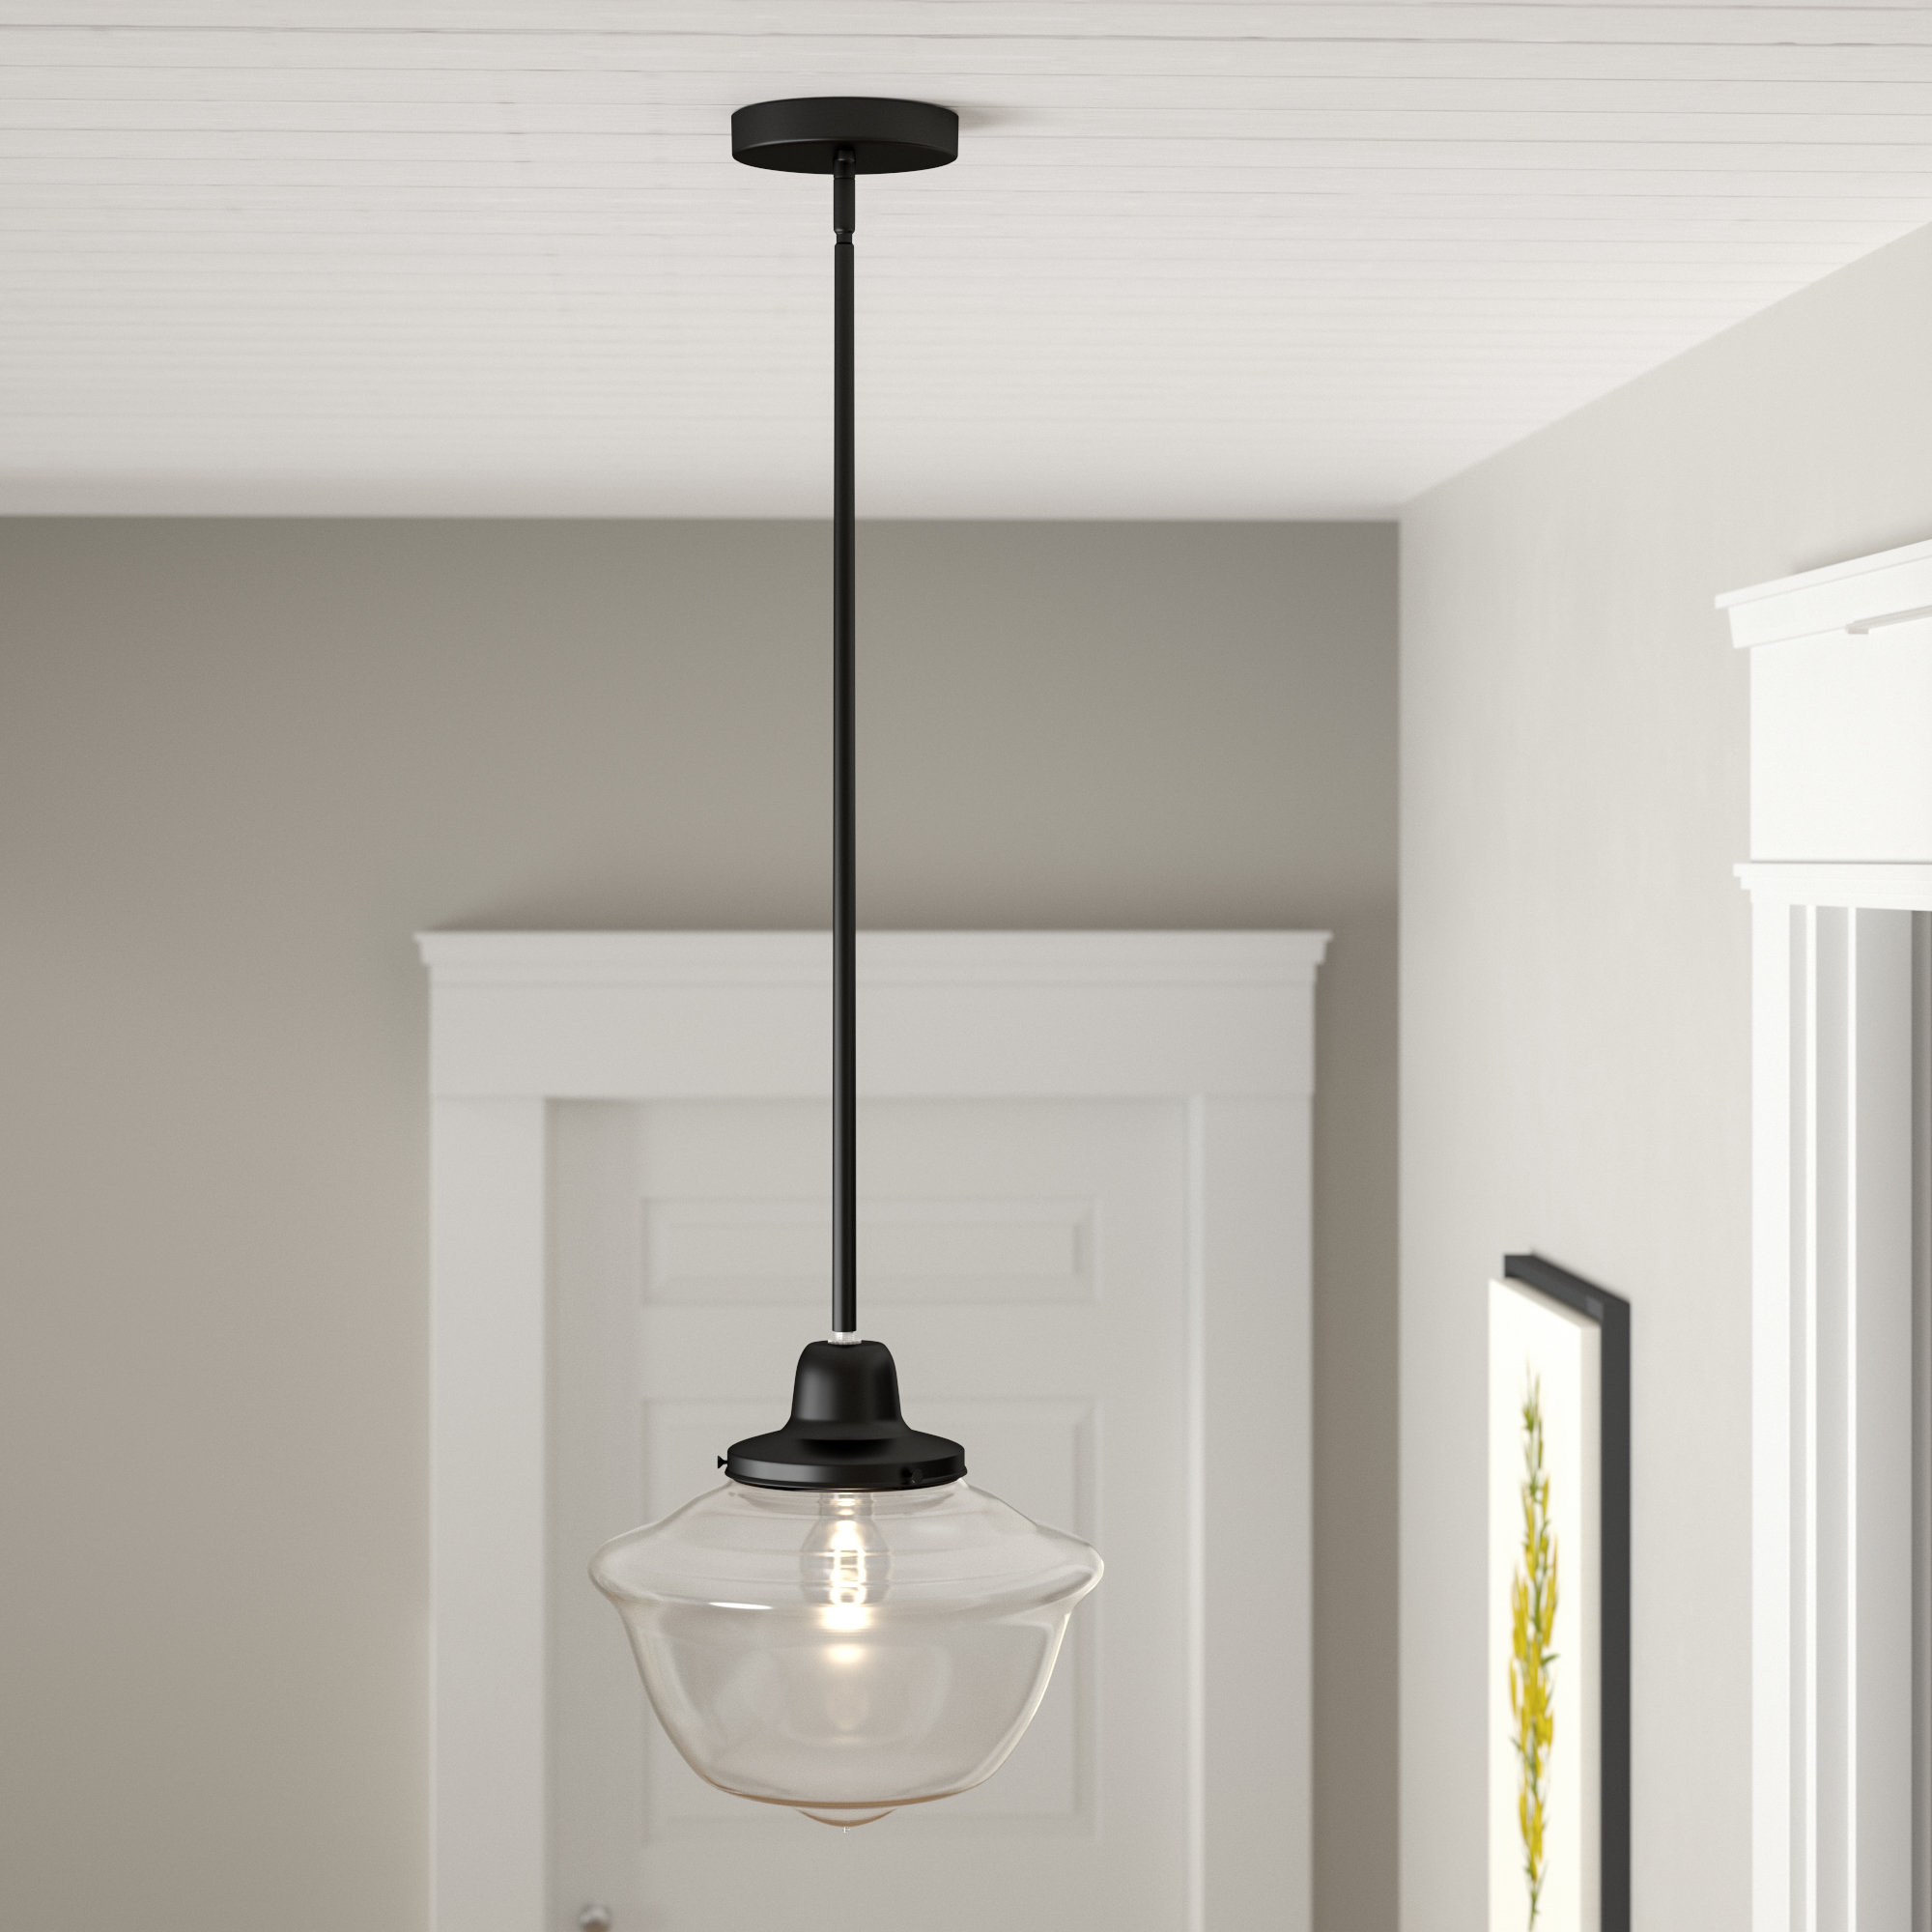 Preferred Isaiah 1 Light Single Schoolhouse Pendant In 1 Light Single Schoolhouse Pendants (View 16 of 20)